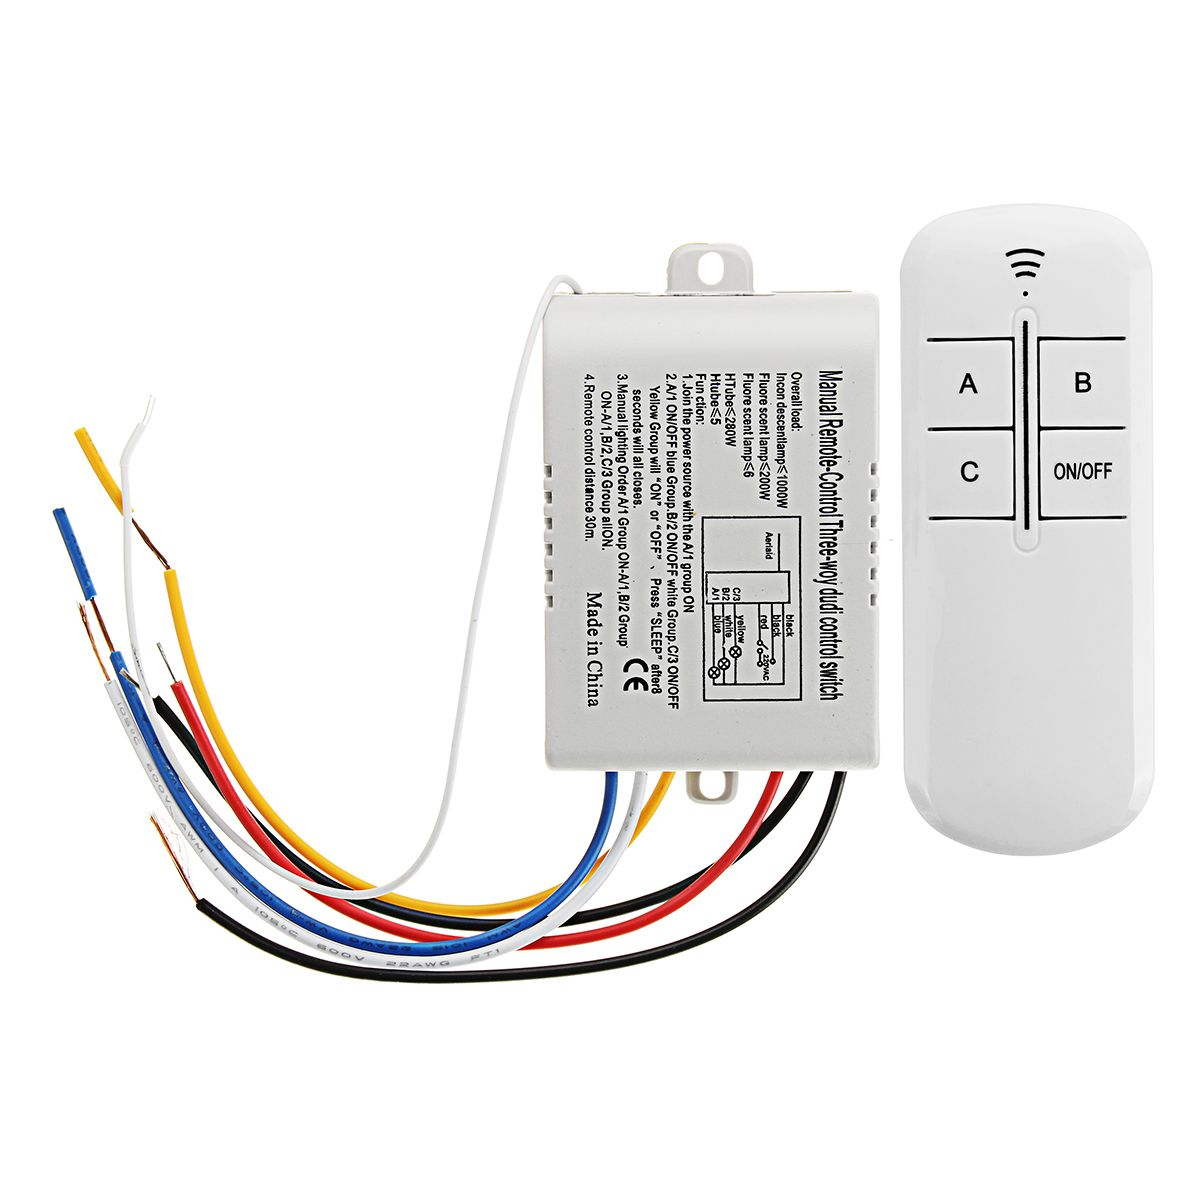 3 ways on off wireless remote control switch receiver transmitter for led lamp ac220v [ 1200 x 1200 Pixel ]